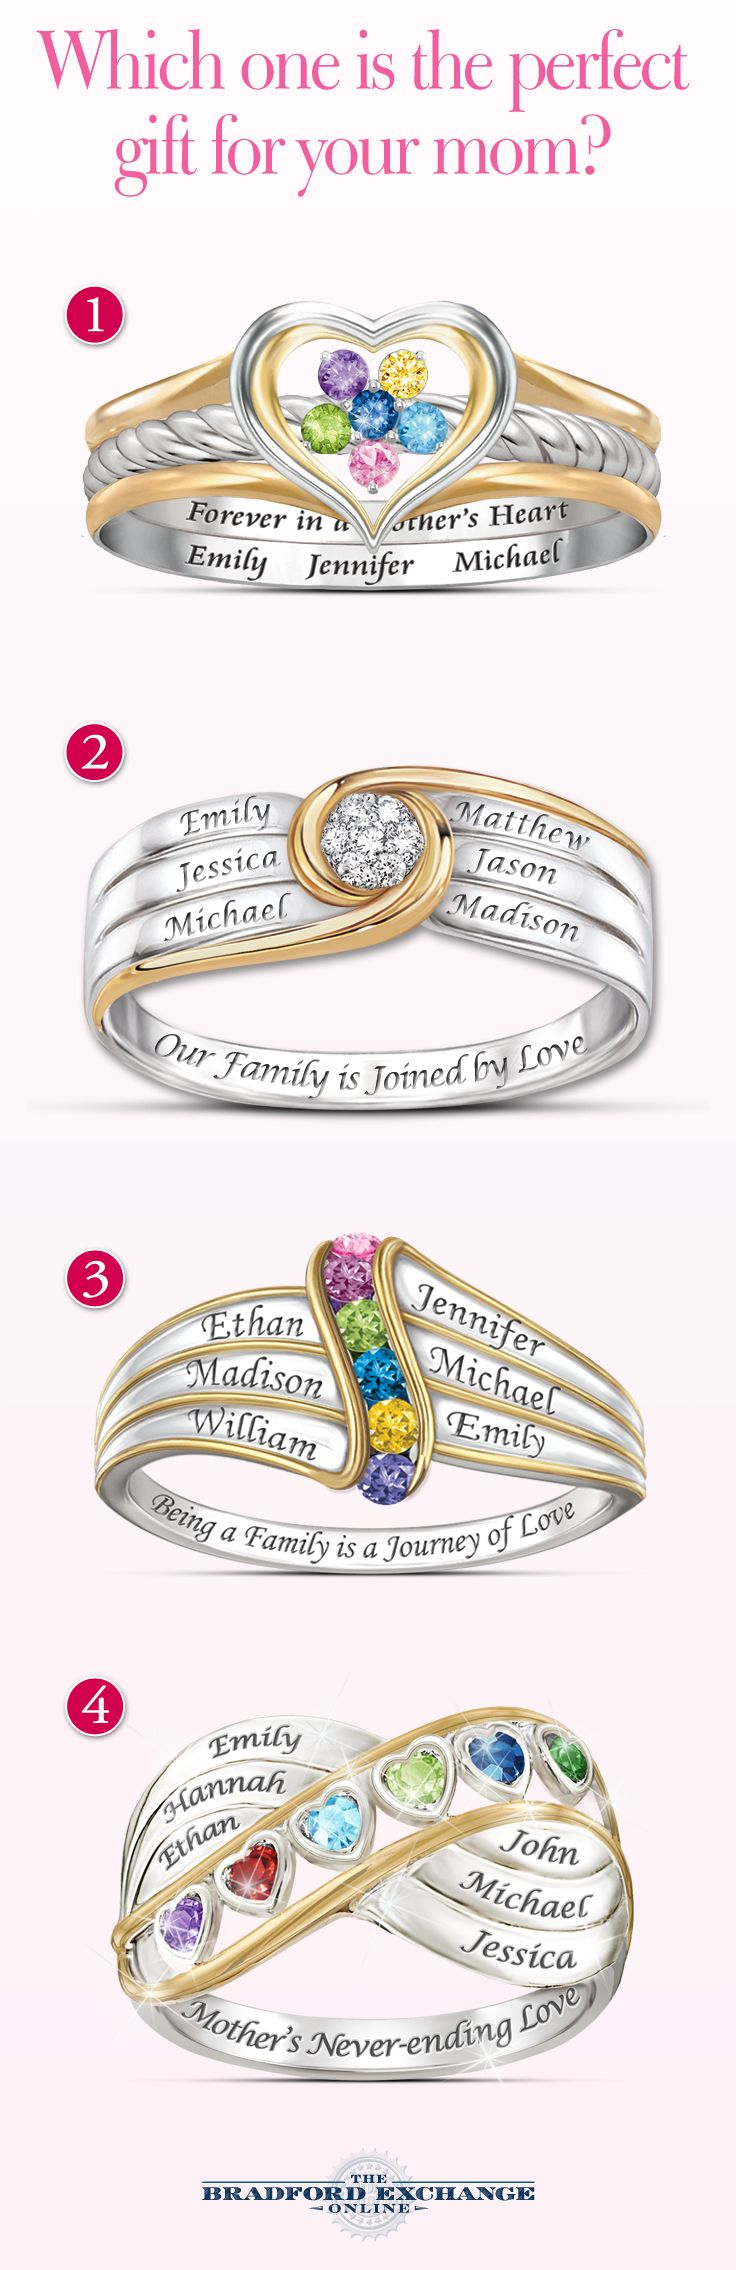 What will be wrapped around her little finger this Mother's Day? How about one of our personalized rings for Mom? They make truly meaningful gifts, so don't wait.